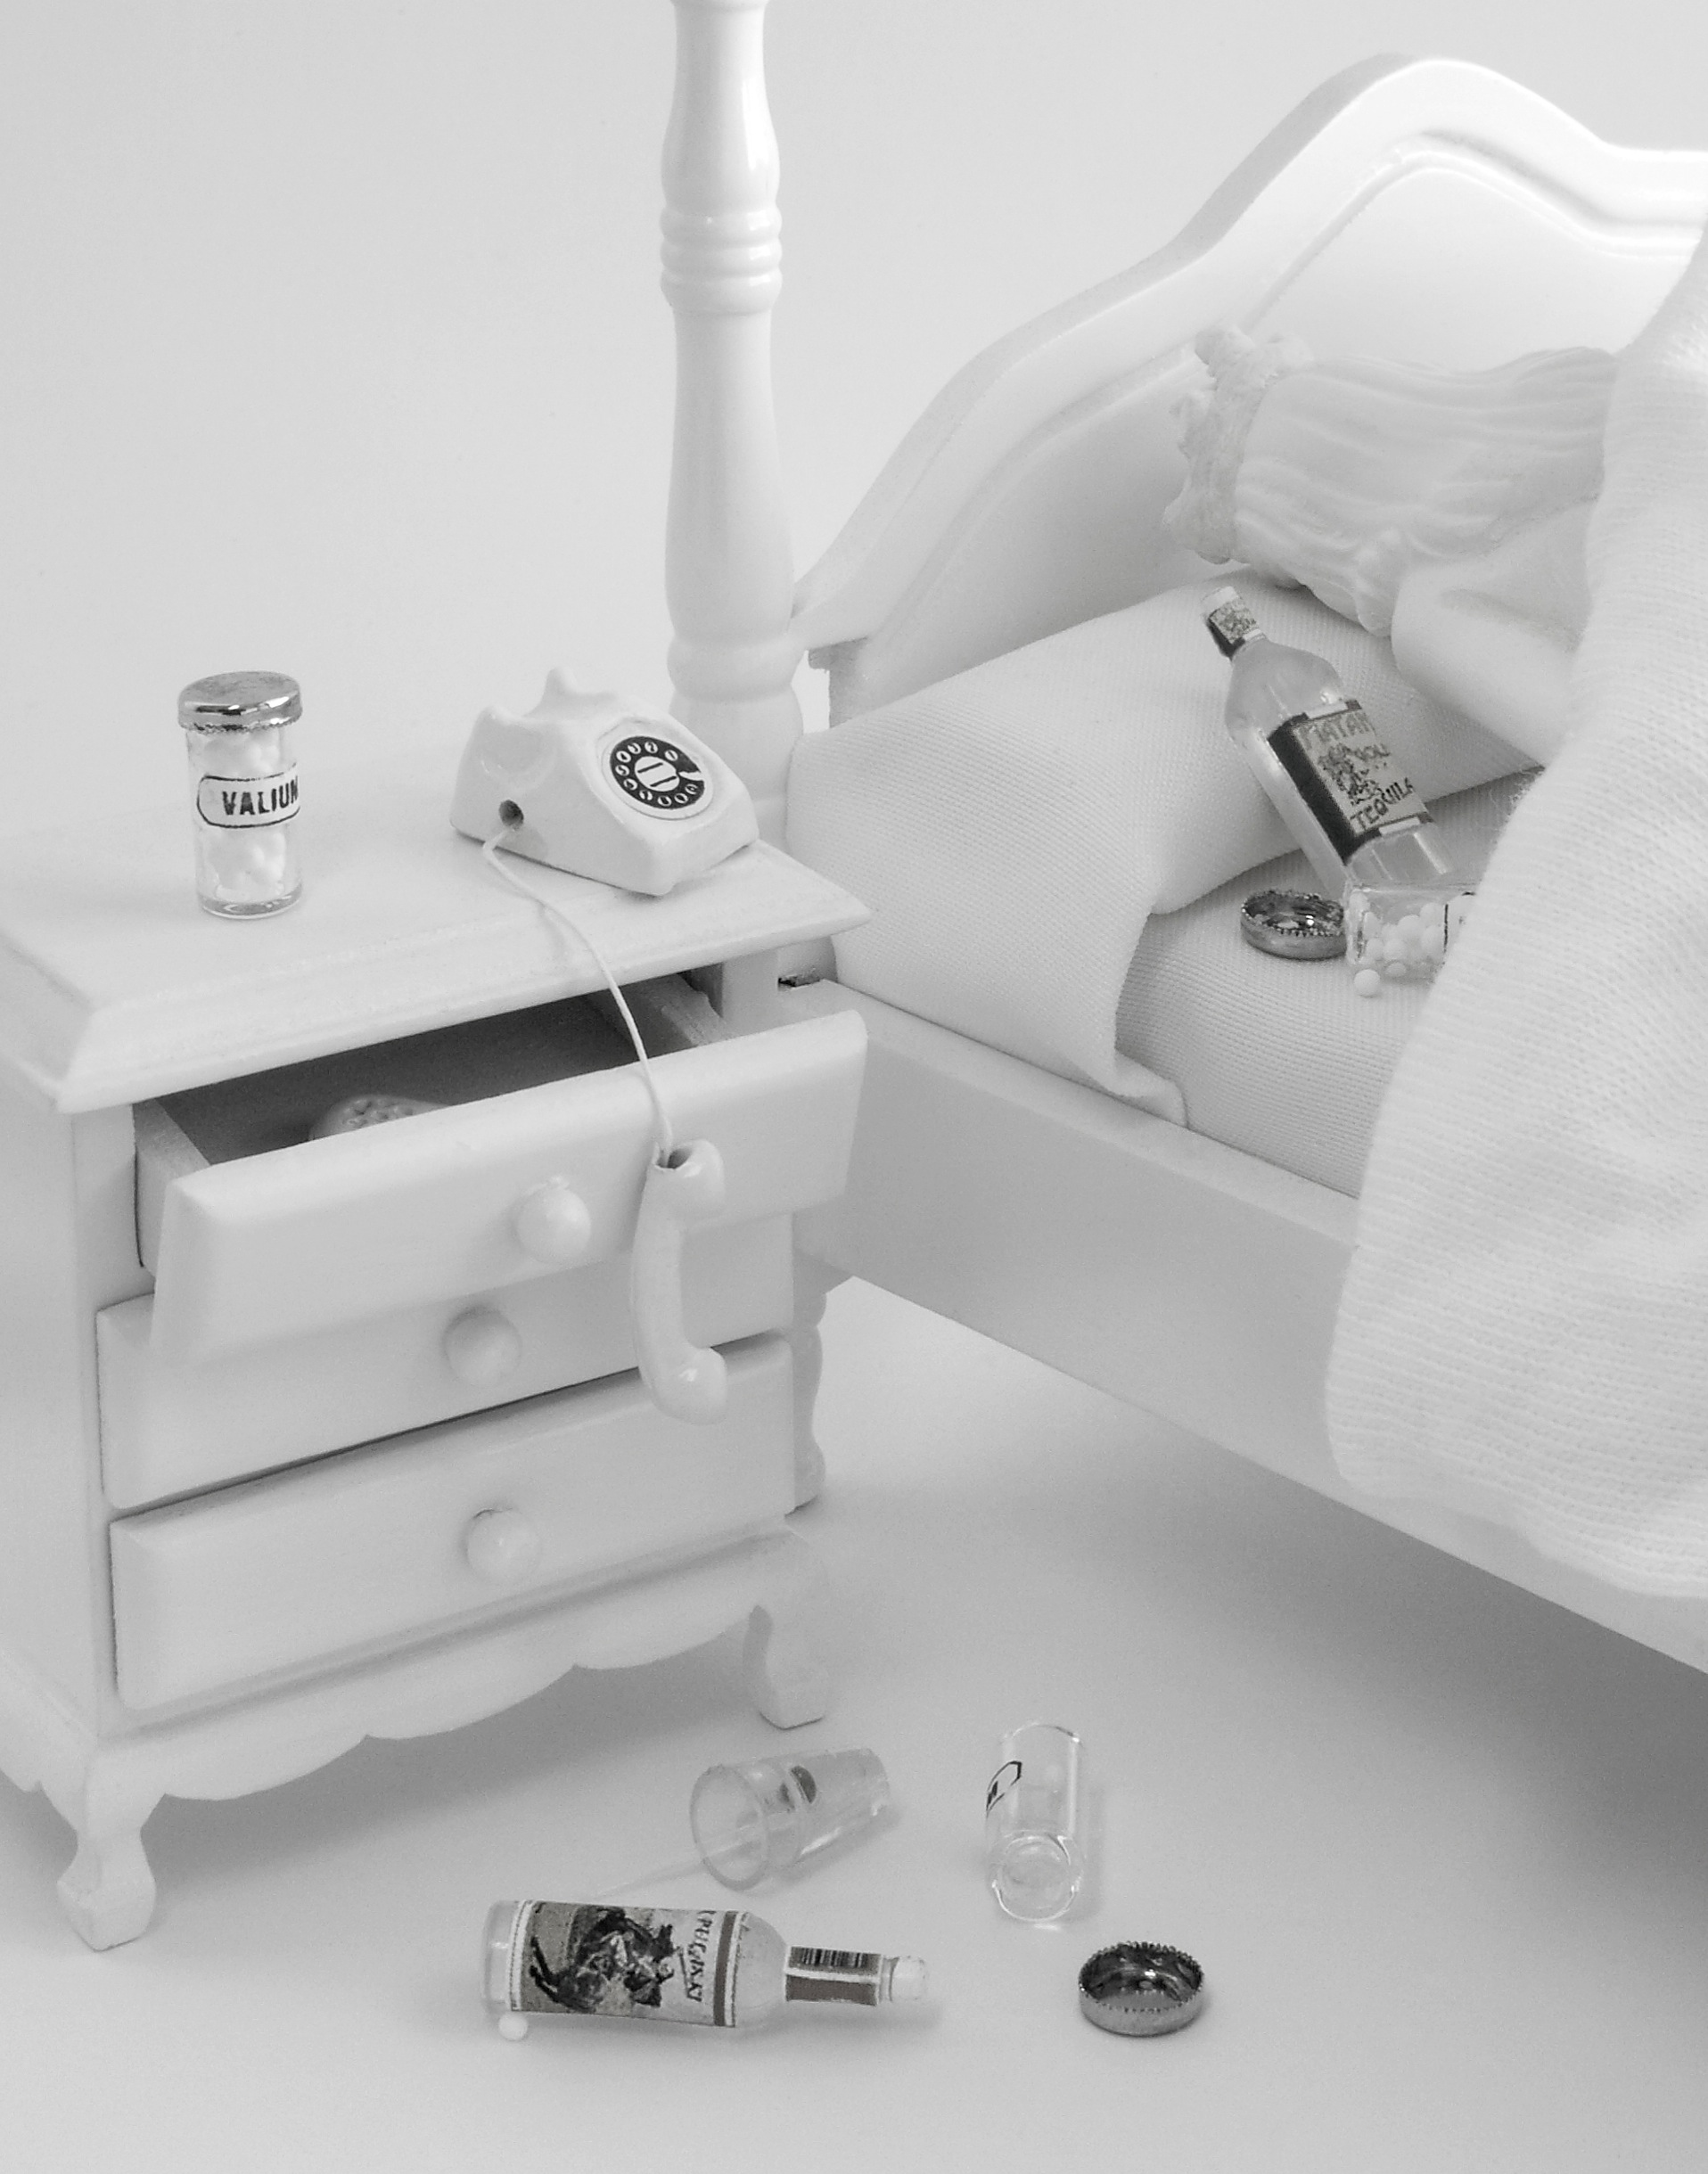 Get HIM to Forgive You , 2010  Photograph in archival ink on rag paper  26 x 32 inches  This work depicts a detail of a bed and side table, empty liquor bottles and pills littering the scene. The phone is left off the hook, dangling over an ajar drawer in which a bottle of Valium can be seen. A liquor bottle and ashtray rest on the pillow. In the corner of the picture plane, the beauty queen's head is just visible - she lies face down on her pillow. The viewer is left to wonder about the severity of the situation: is she sleeping off the hangover, or is it more dire?